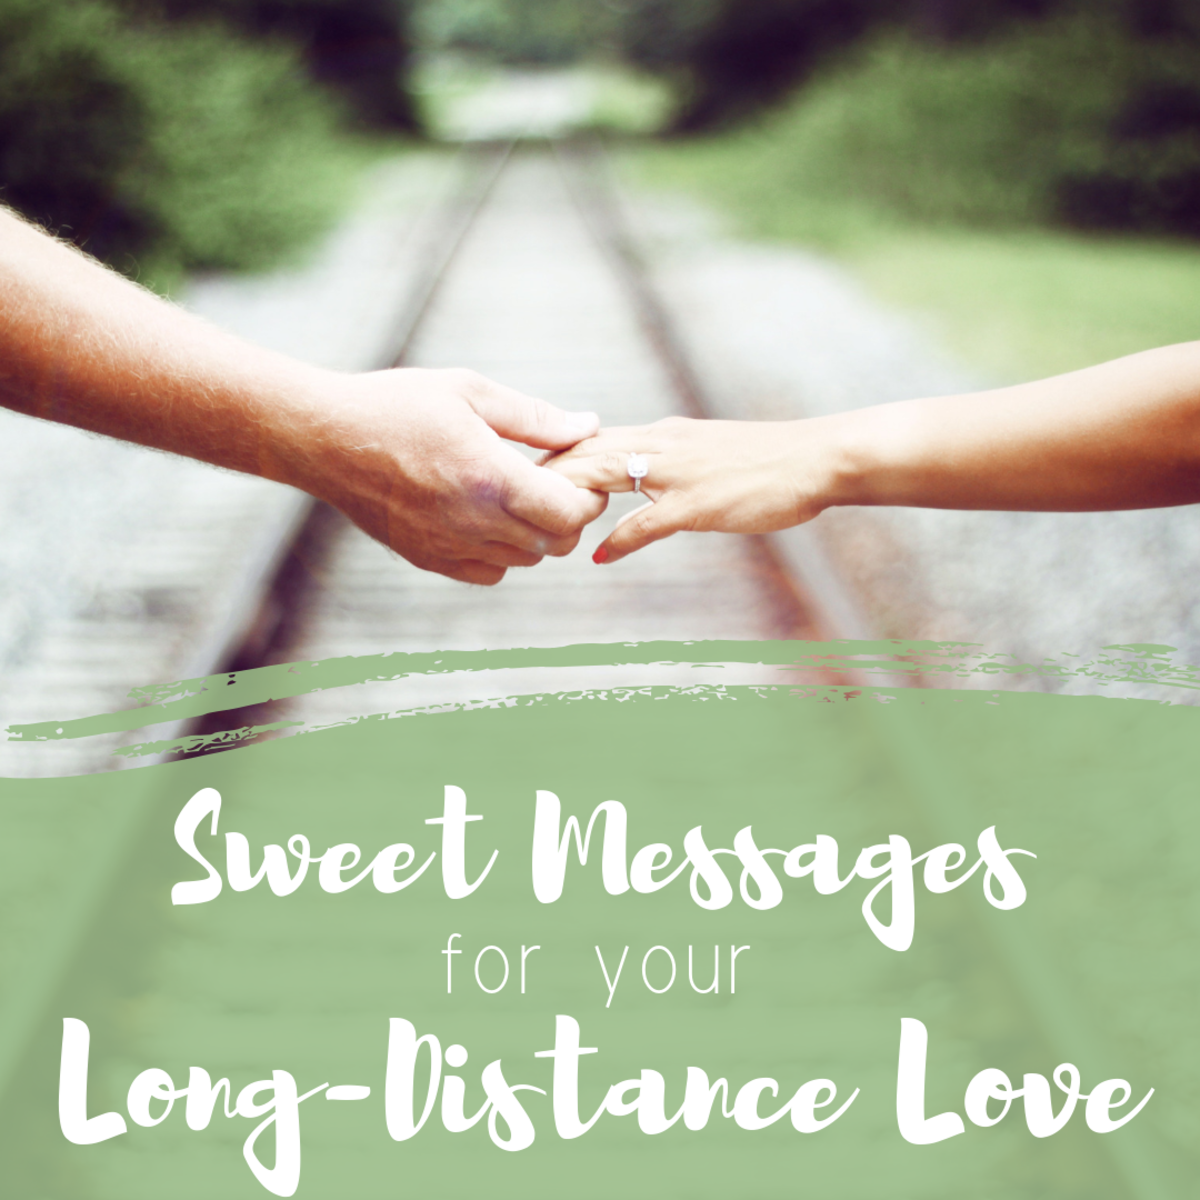 How to stop missing him long distance